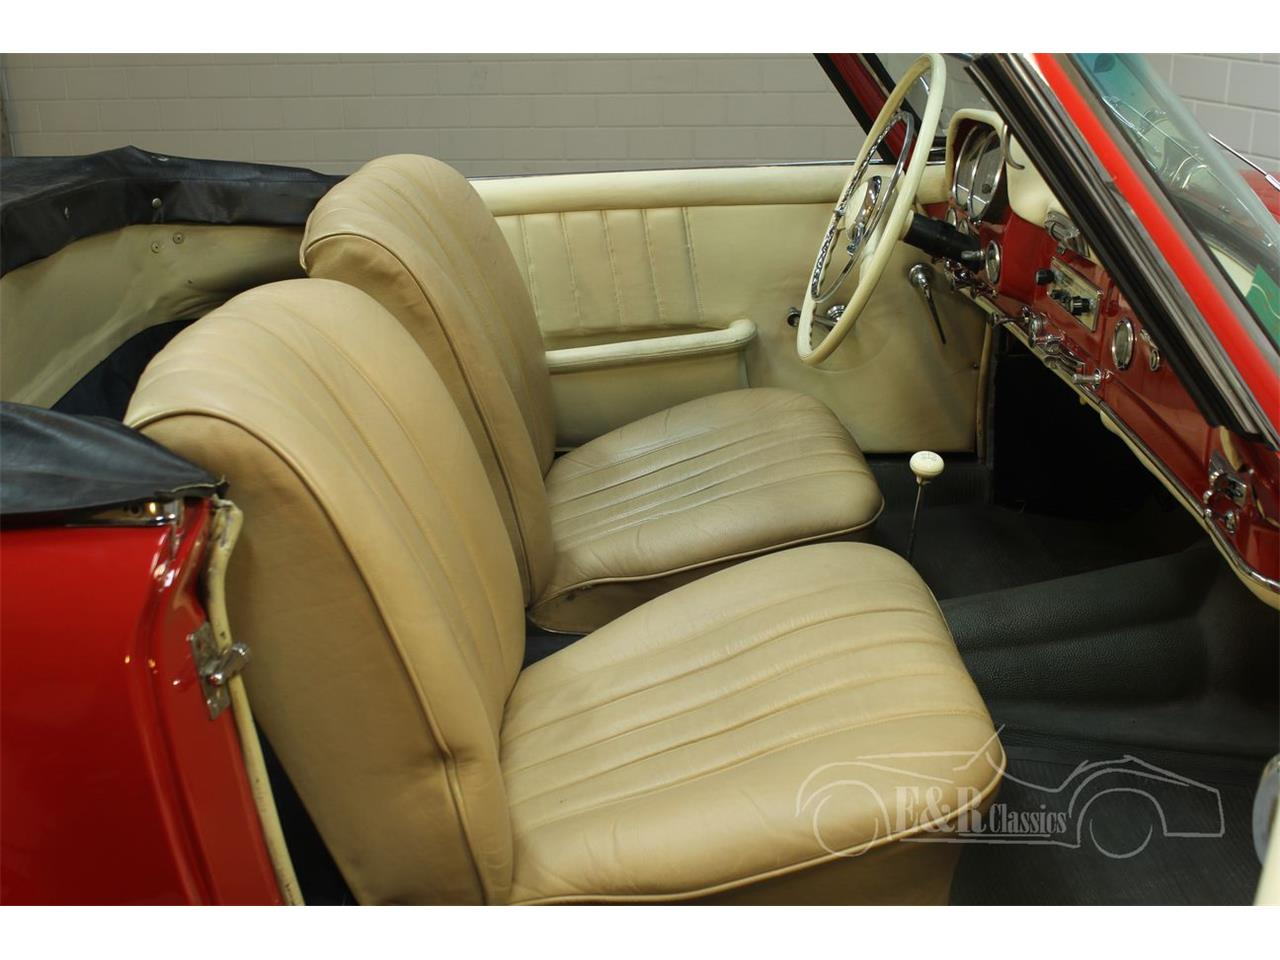 Large Picture of 1956 Mercedes-Benz 190SL located in - Keine Angabe - - $118,450.00 - PH44